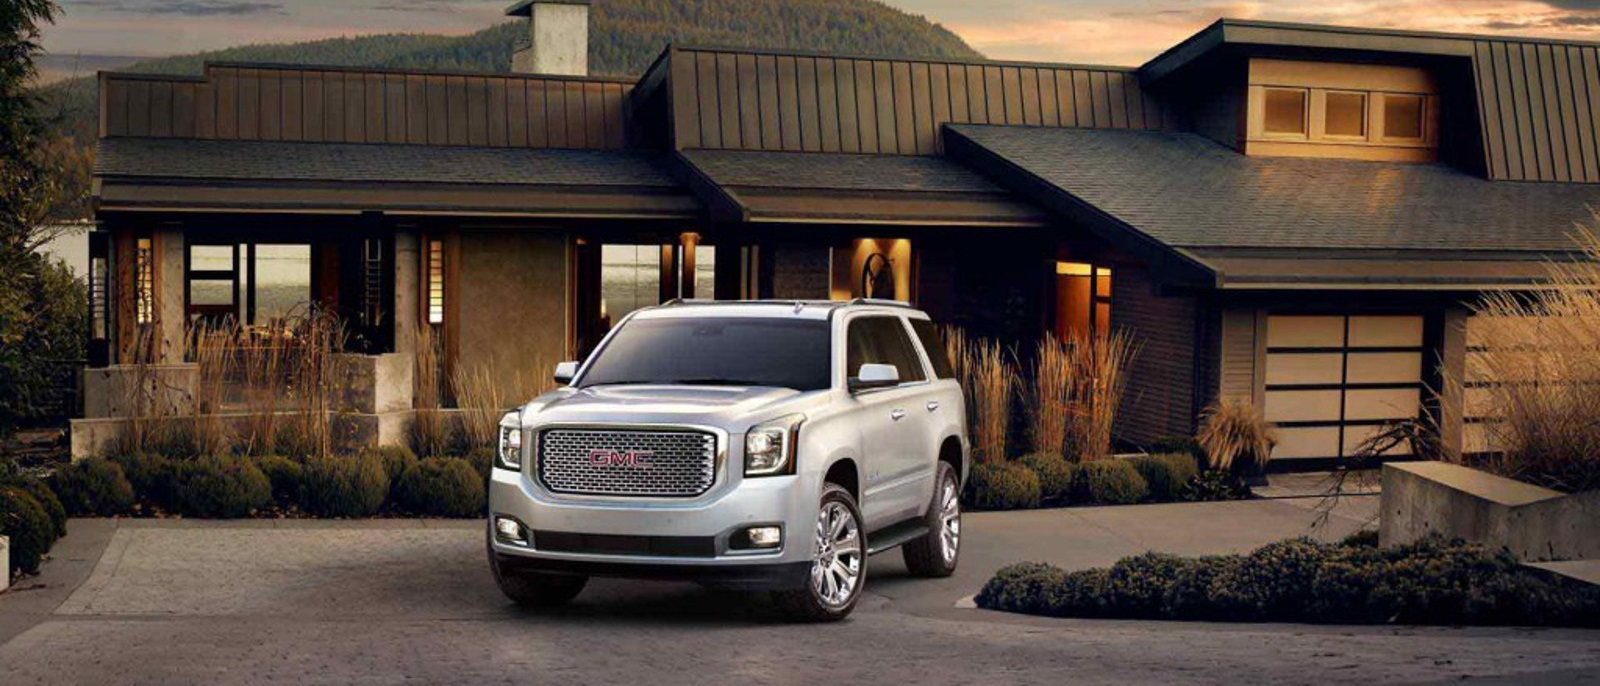 Experience The Power And Luxury Of The Denali Lineup